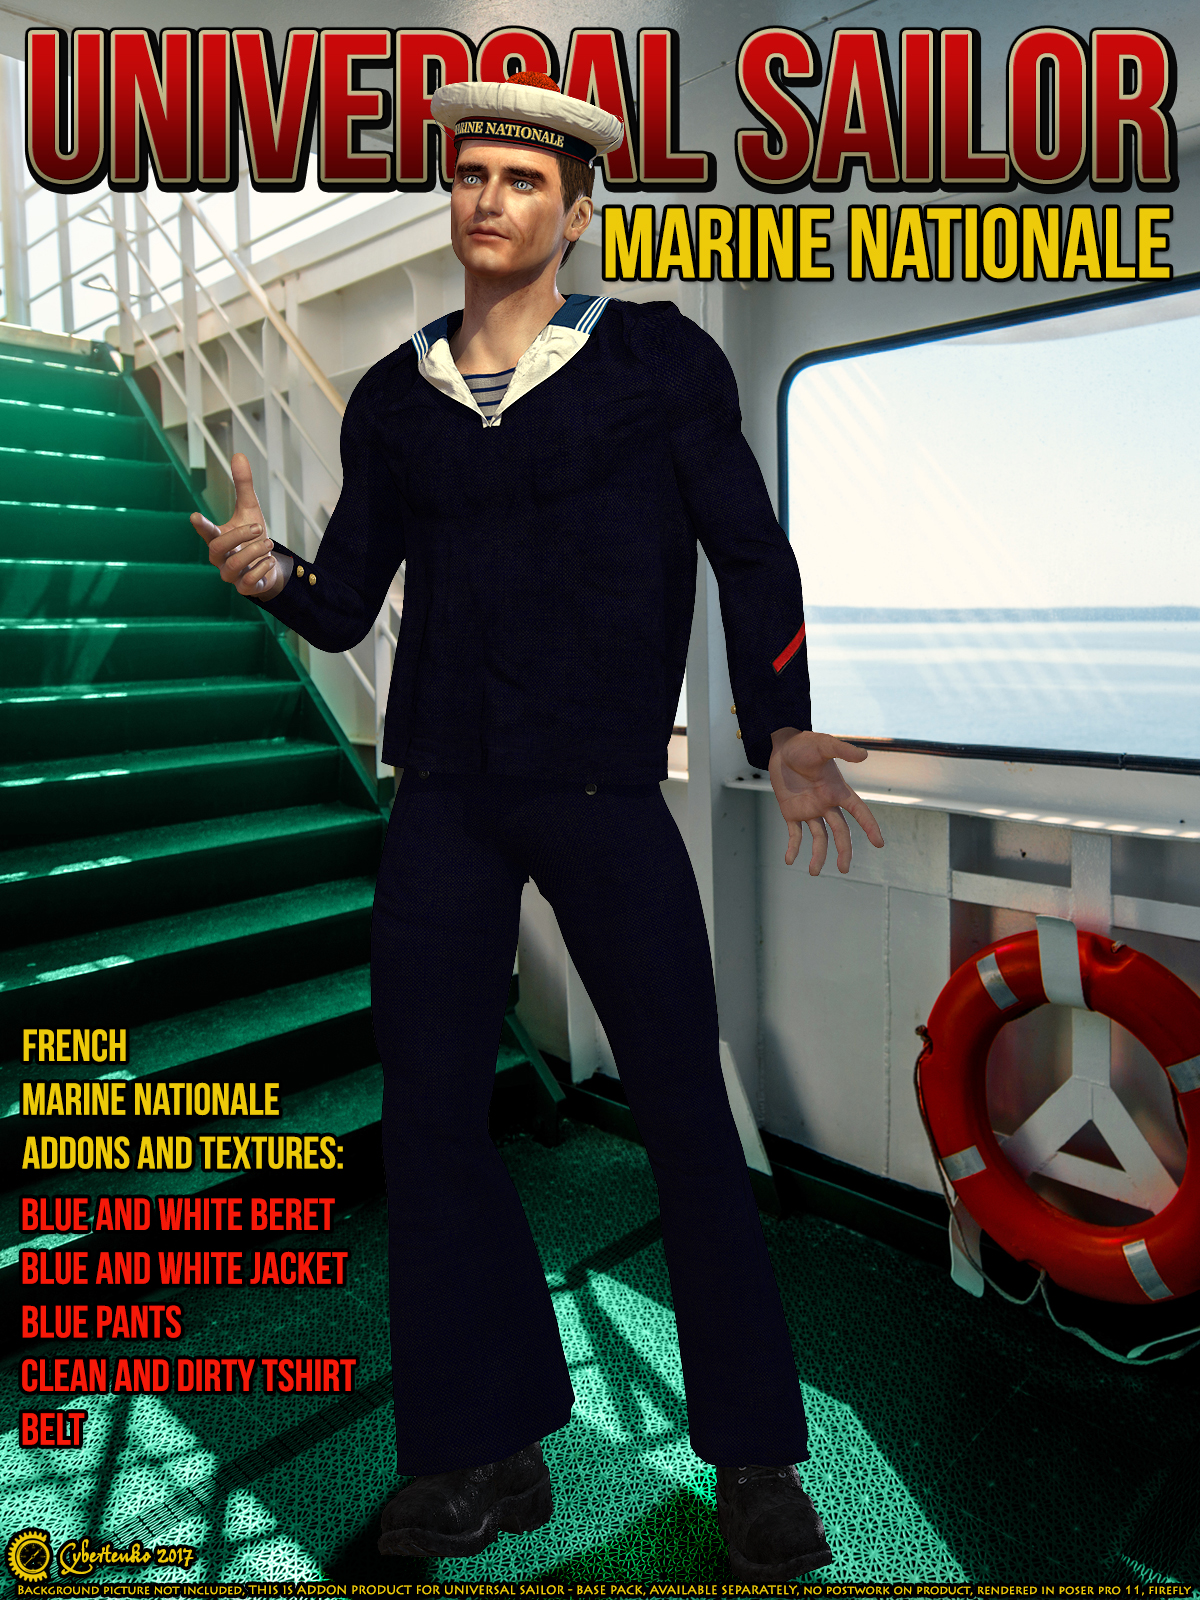 Marine Nationale for Universal Sailor